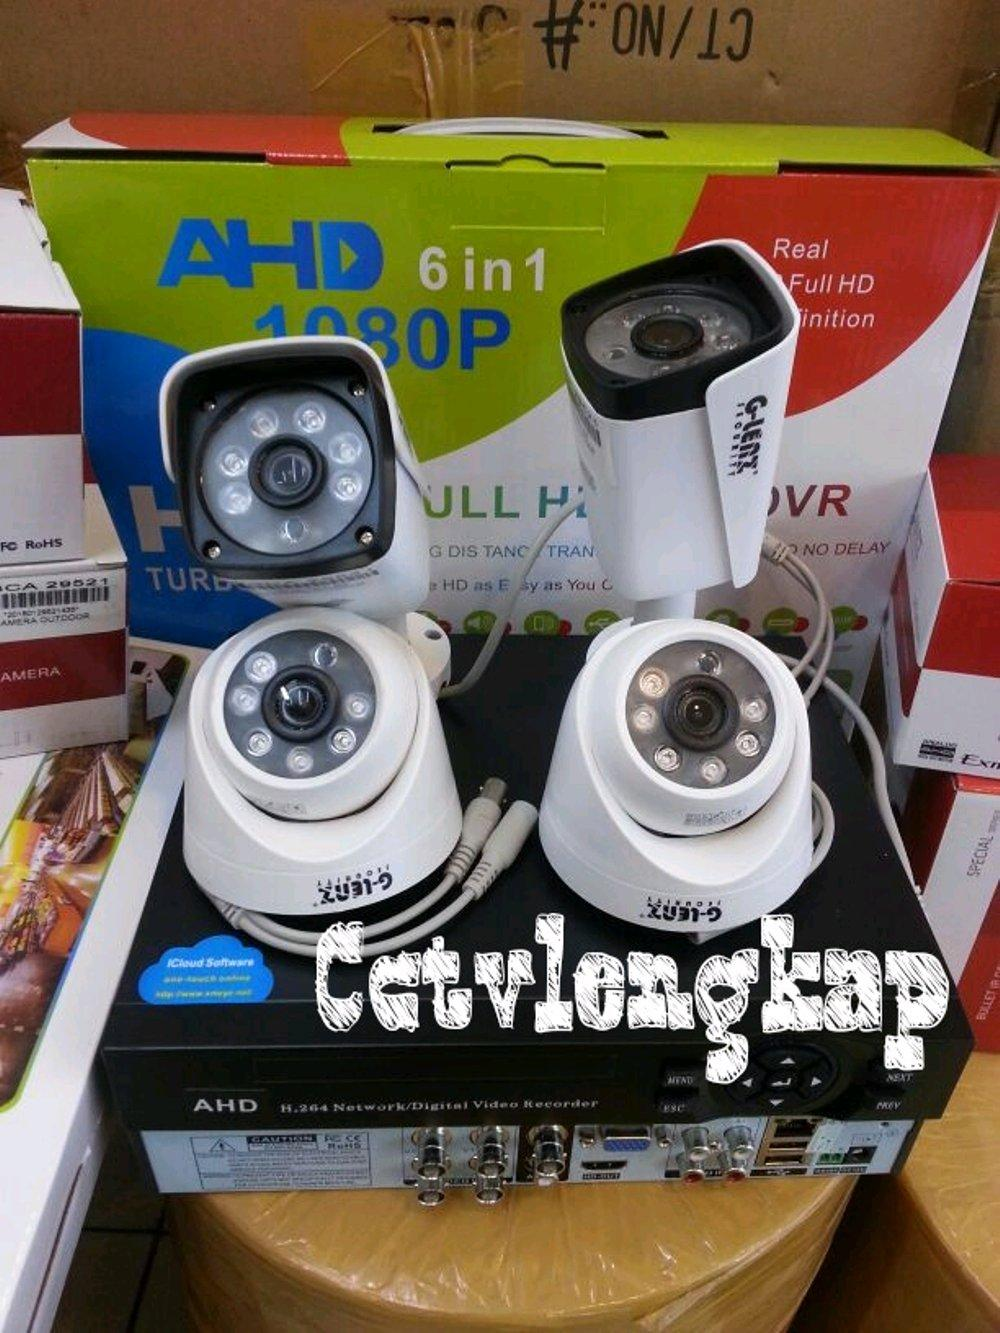 Paket kamera cctv 4ch 2mp full hd glens ic sony exmor